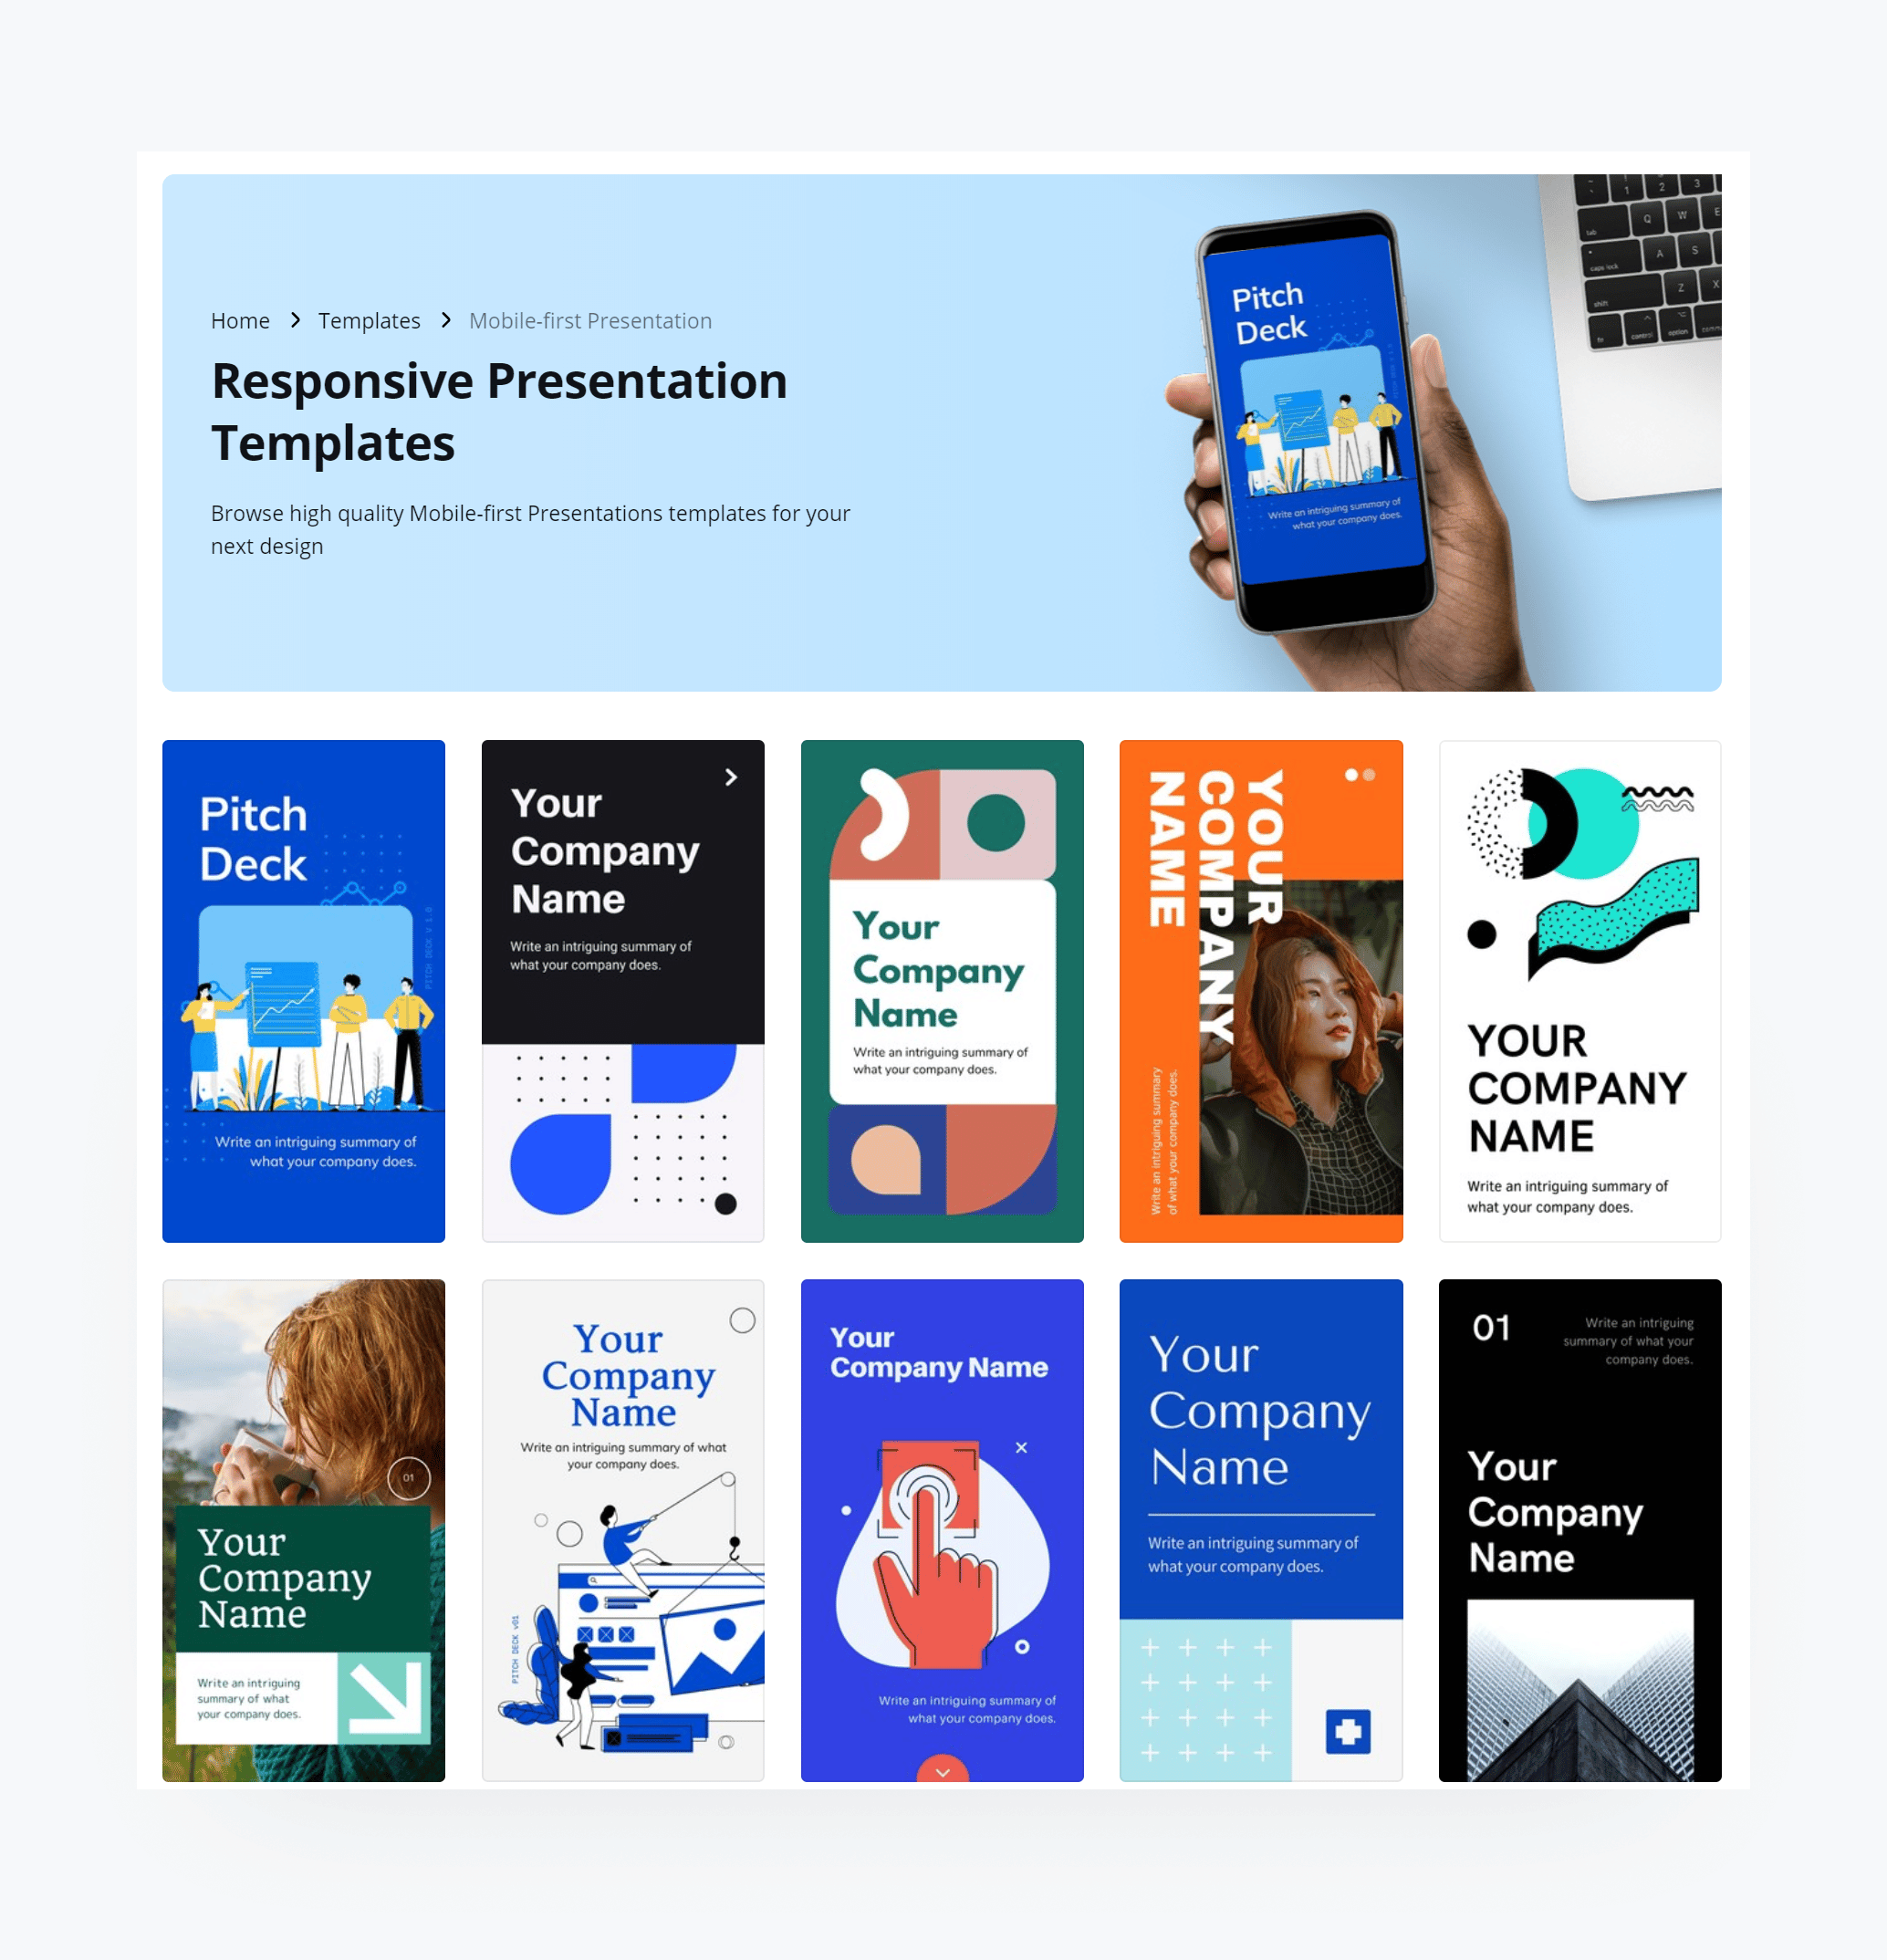 Mobile-First Presentation Templates